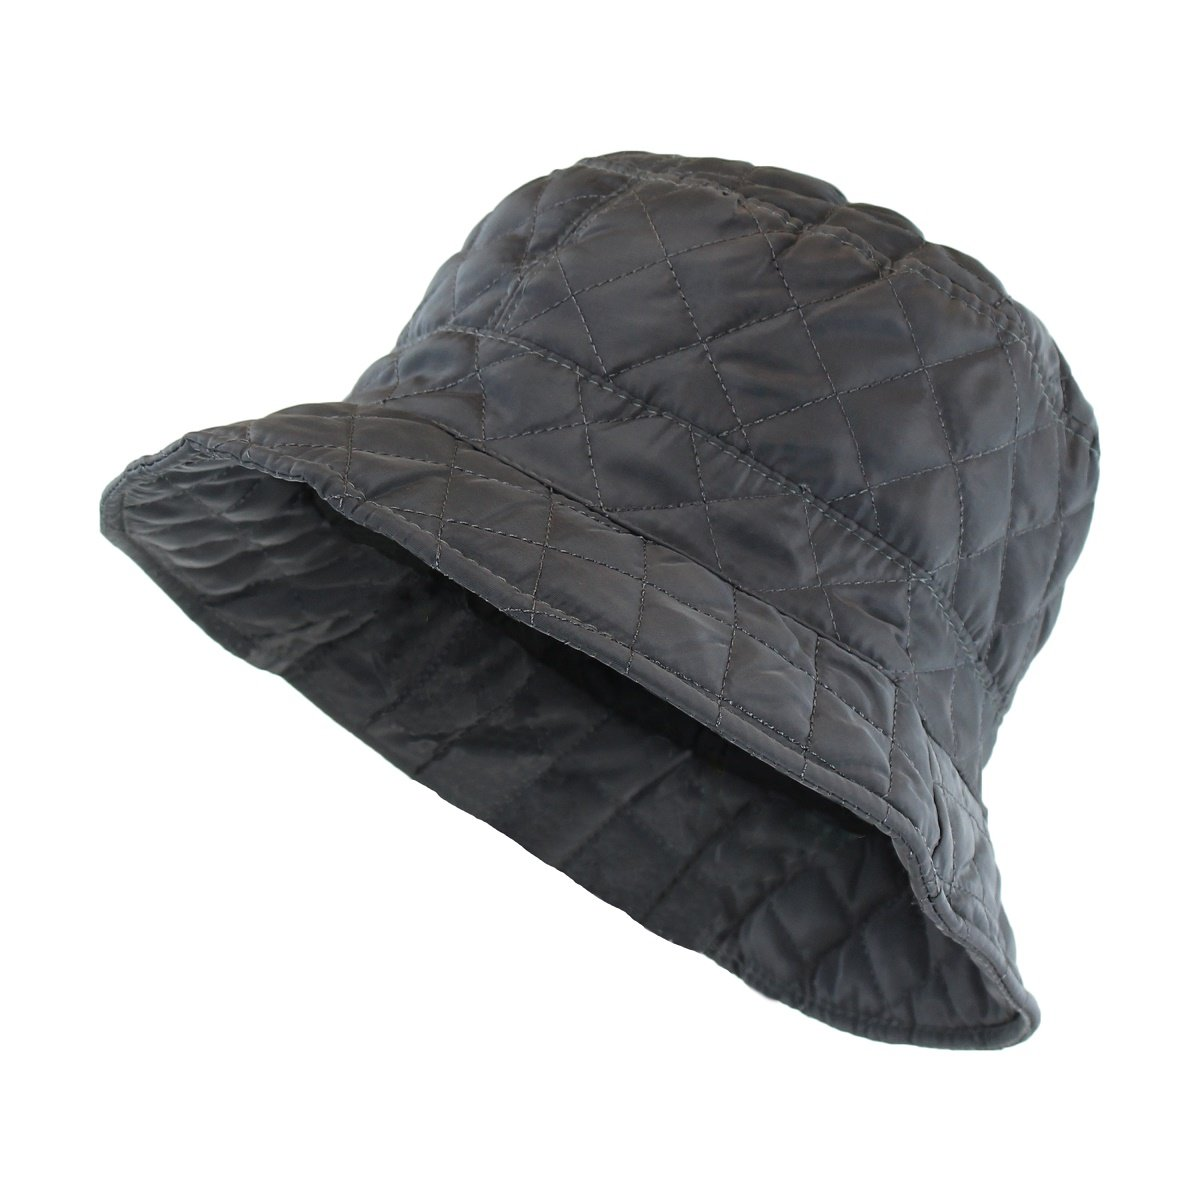 Gray Foldable Water Repellent Quilted Rain Hat w/ Drawstring, Bucket Cap by ANGELA & WILLIAM